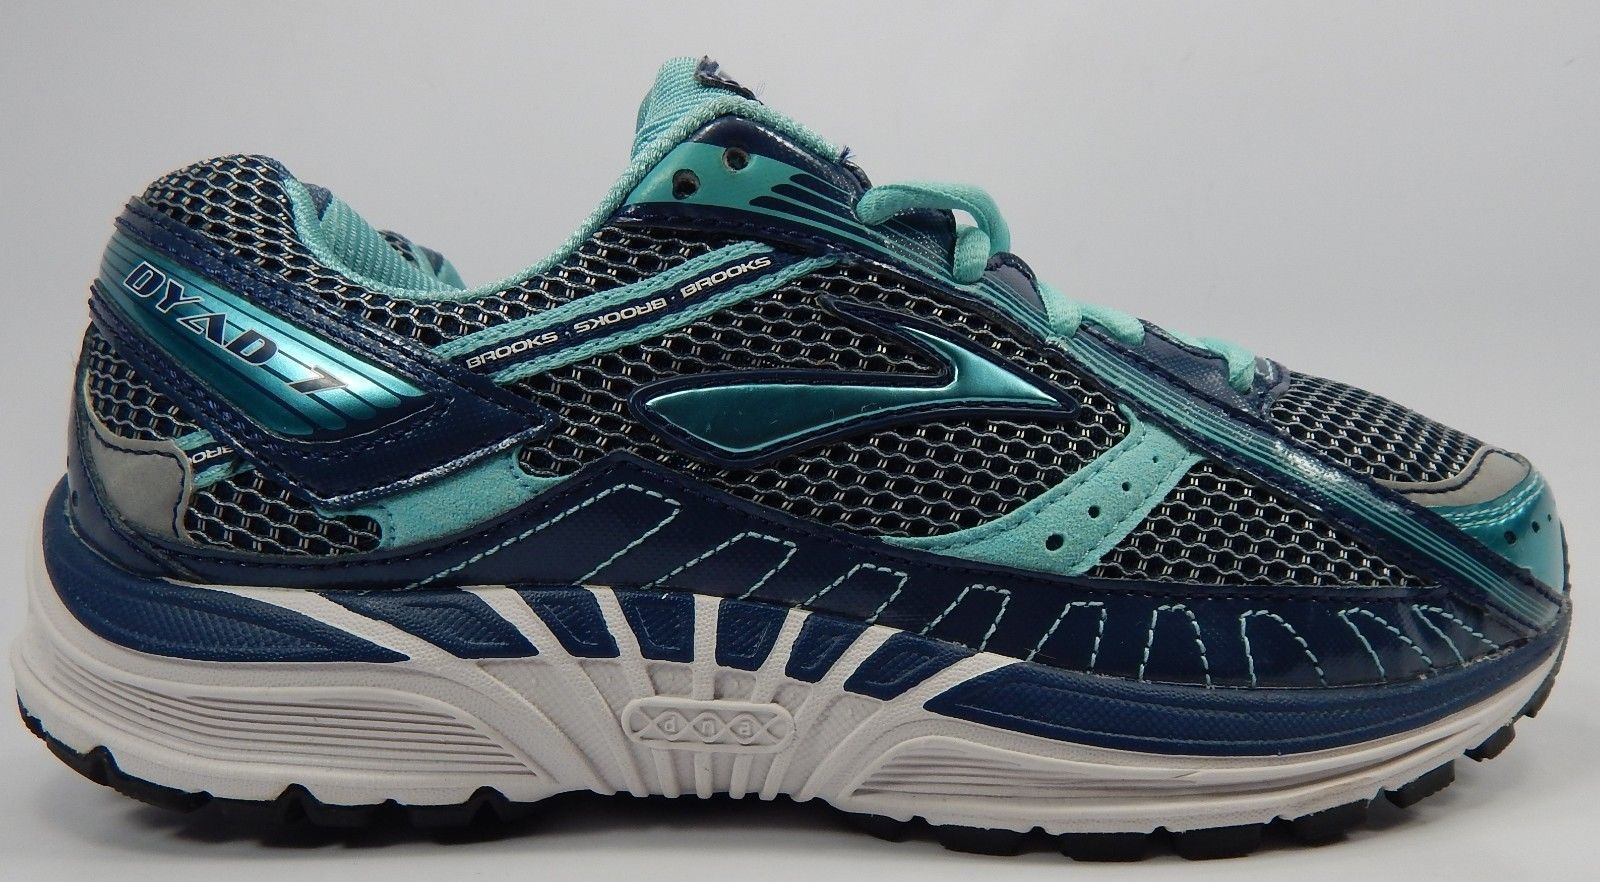 Brooks Dyad 7 Size US 8 2E EXTRA WIDE EU 39 Women's Running Shoes 1201152E944 image 1